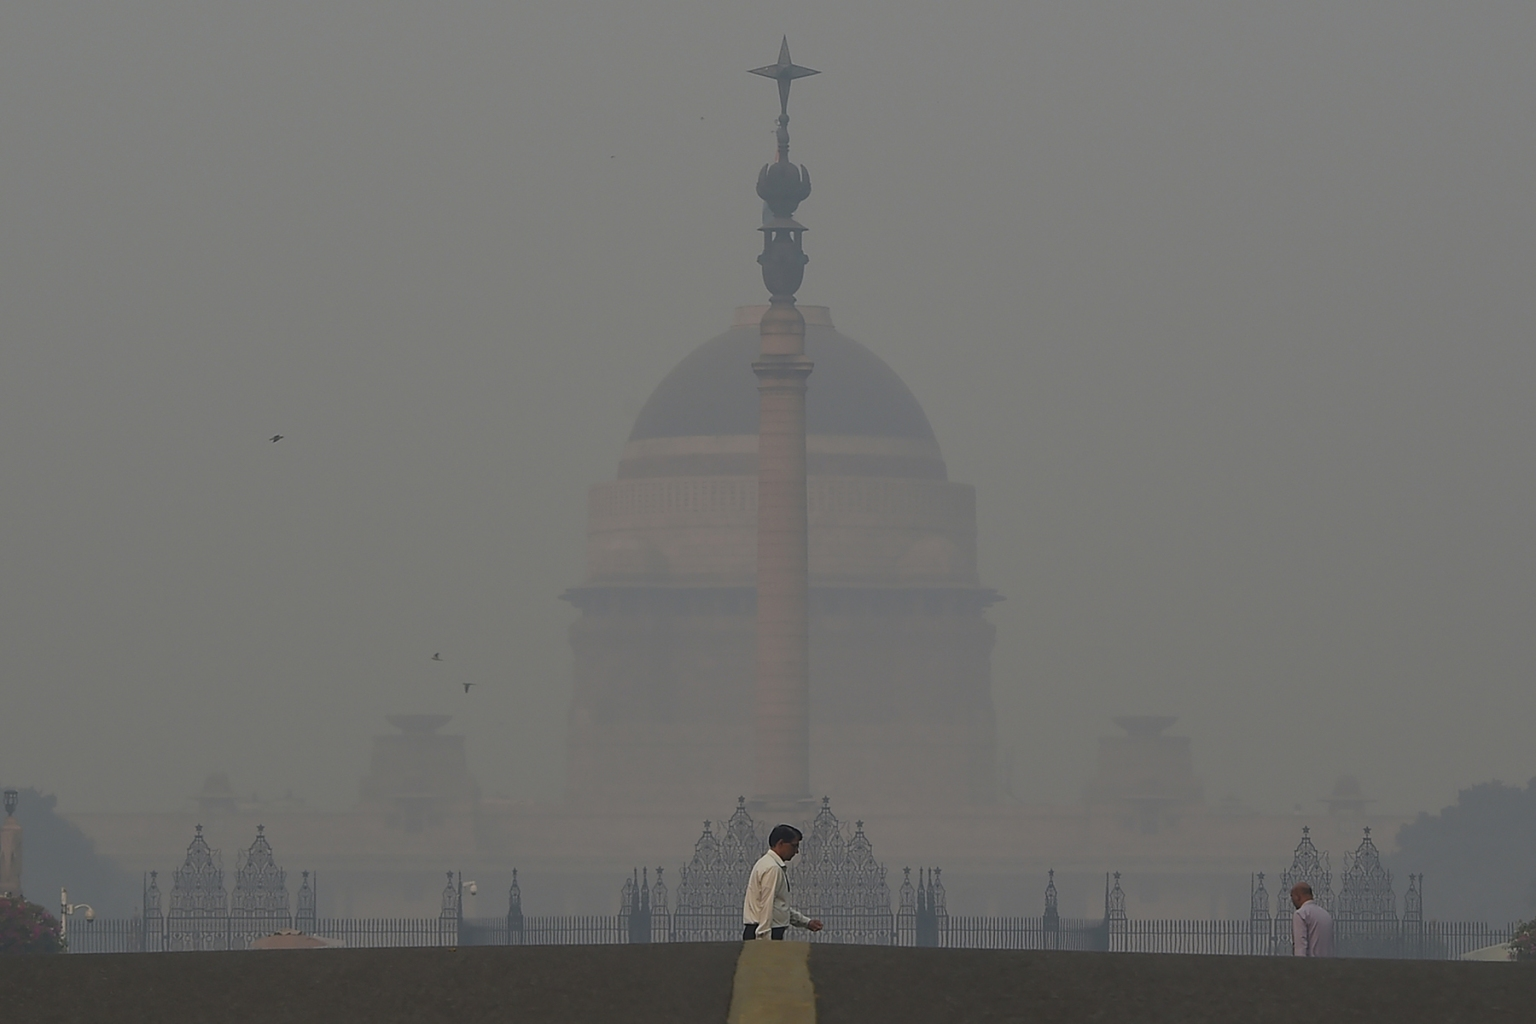 A pedestrian crosses a road near the Indian president's house amid heavy smog in New Delhi on Nov. 8. Air pollution in New Delhi hit hazardous levels after a night of Diwali fireworks, despite Supreme Court efforts to curb partying that fuels the Indian capital's toxic smog problem. MONEY SHARMA/AFP/Getty Images